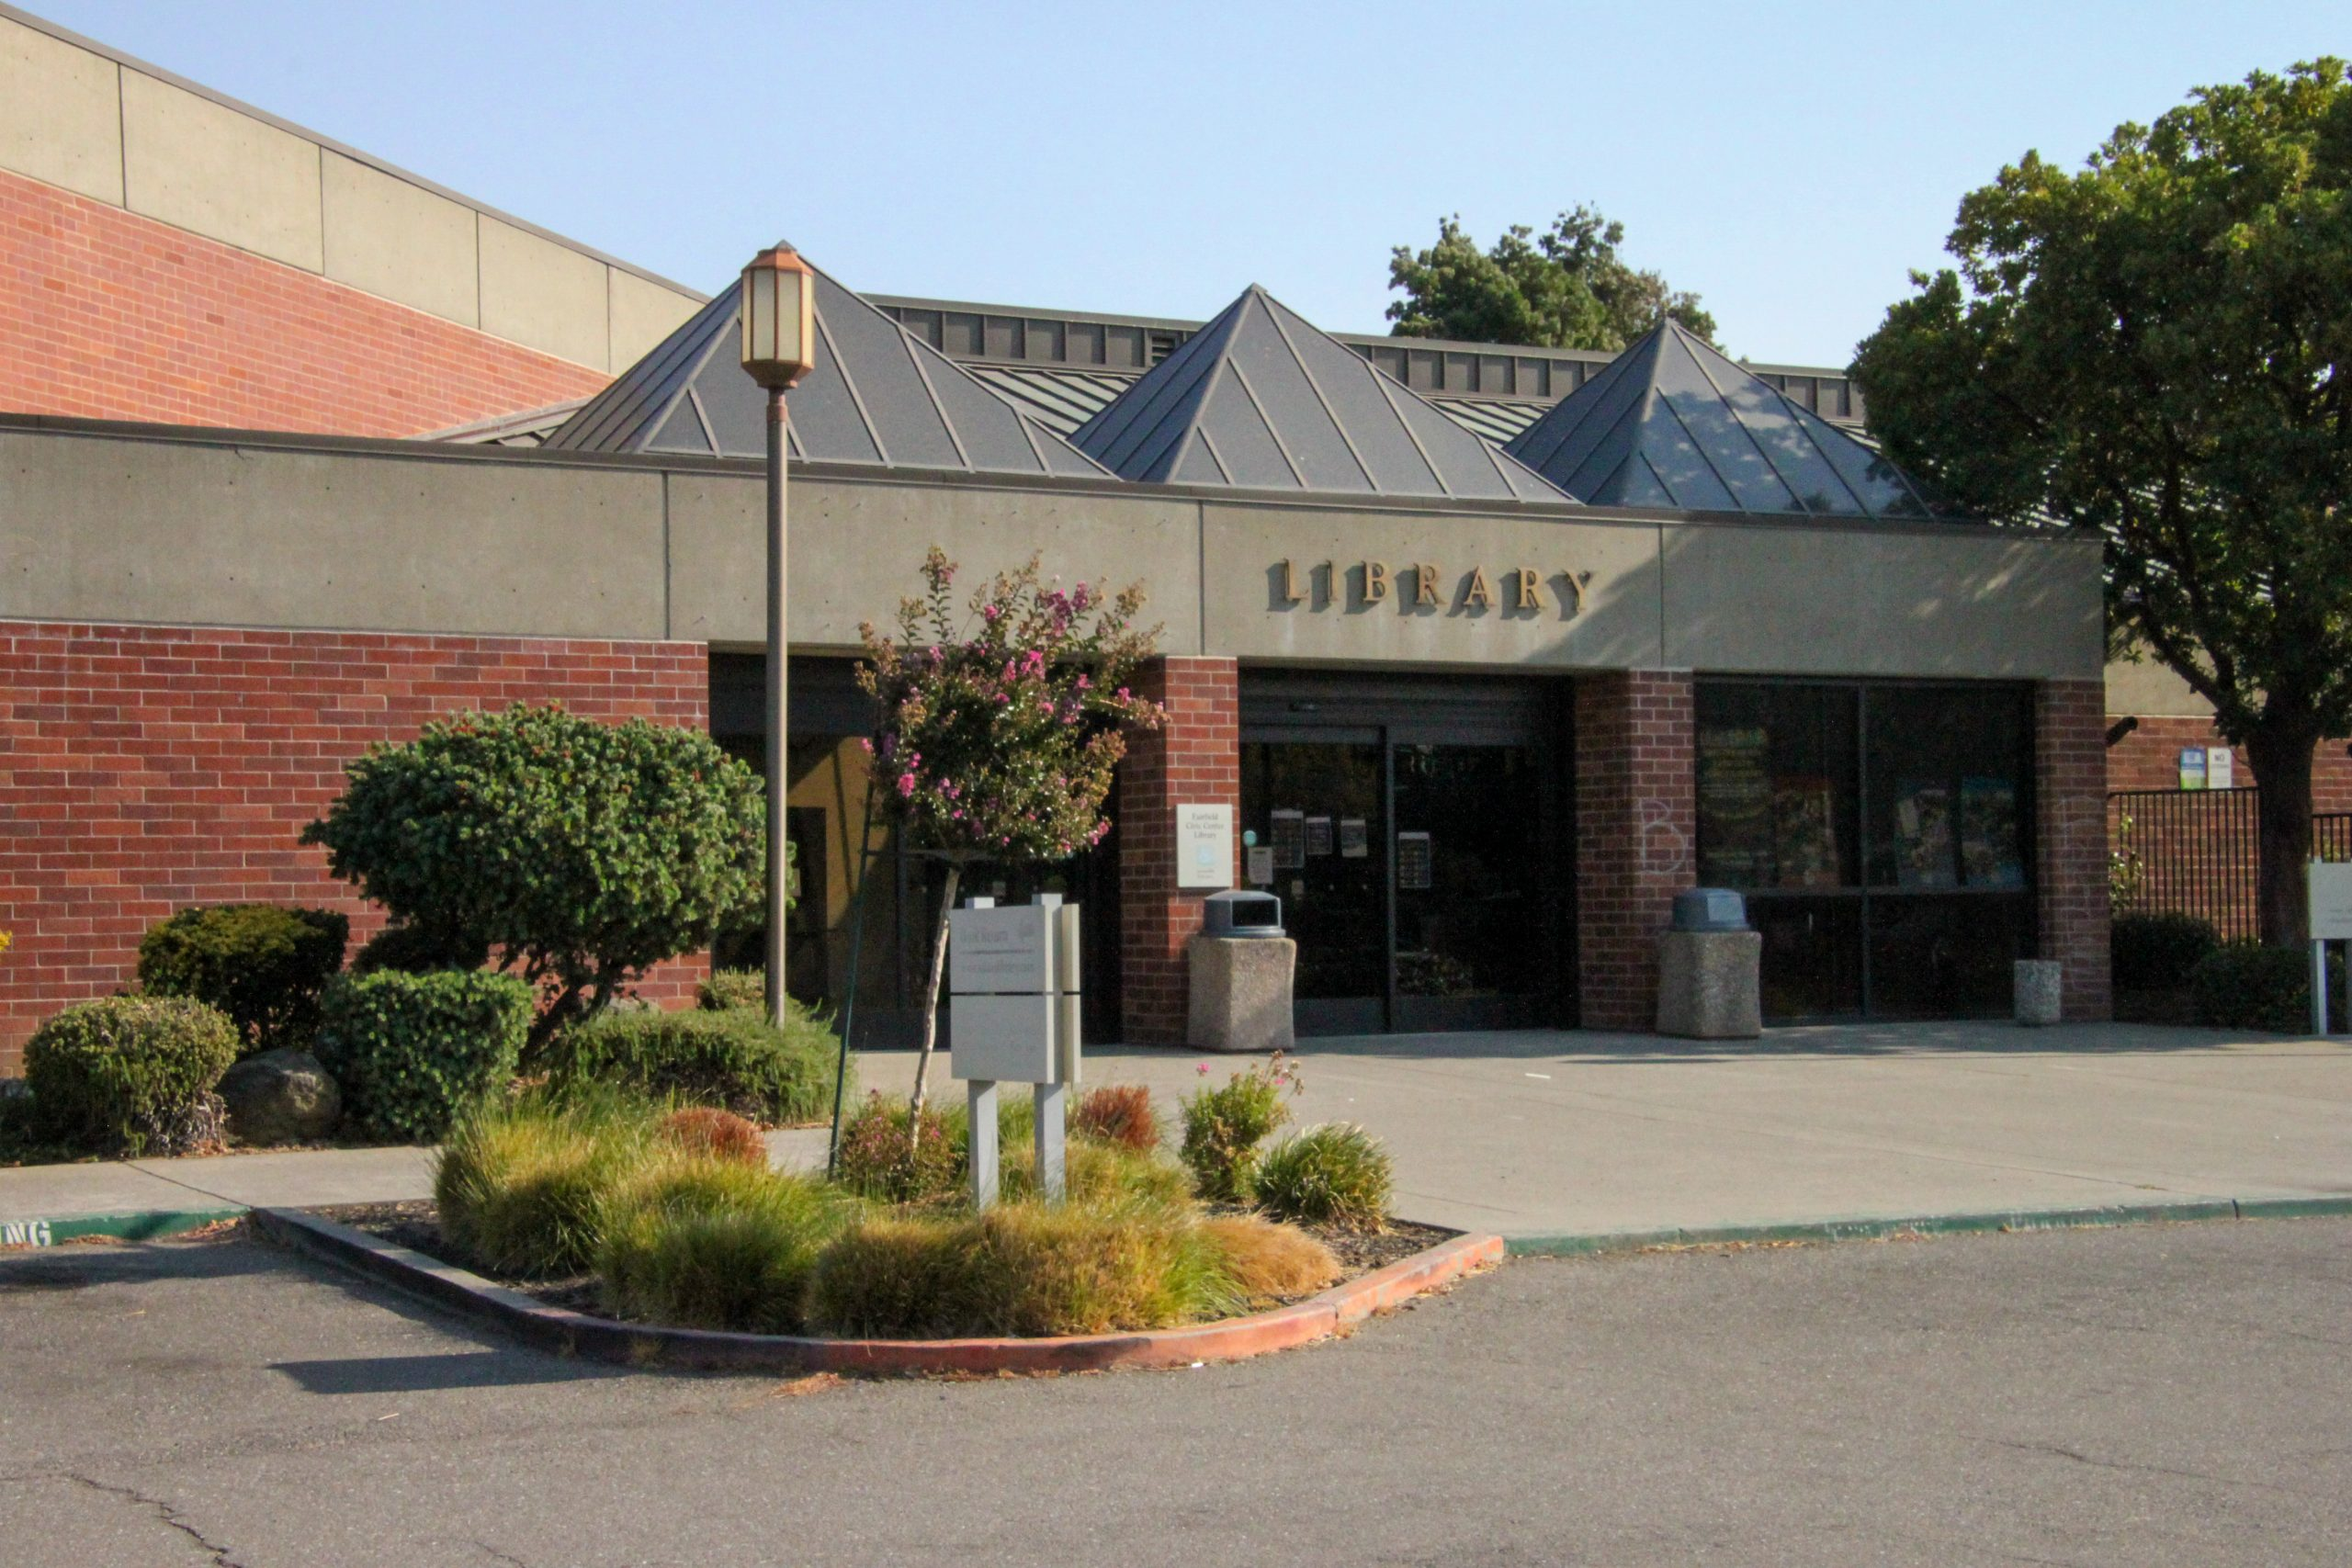 Exterior Of The Fairfield Civic Center Library